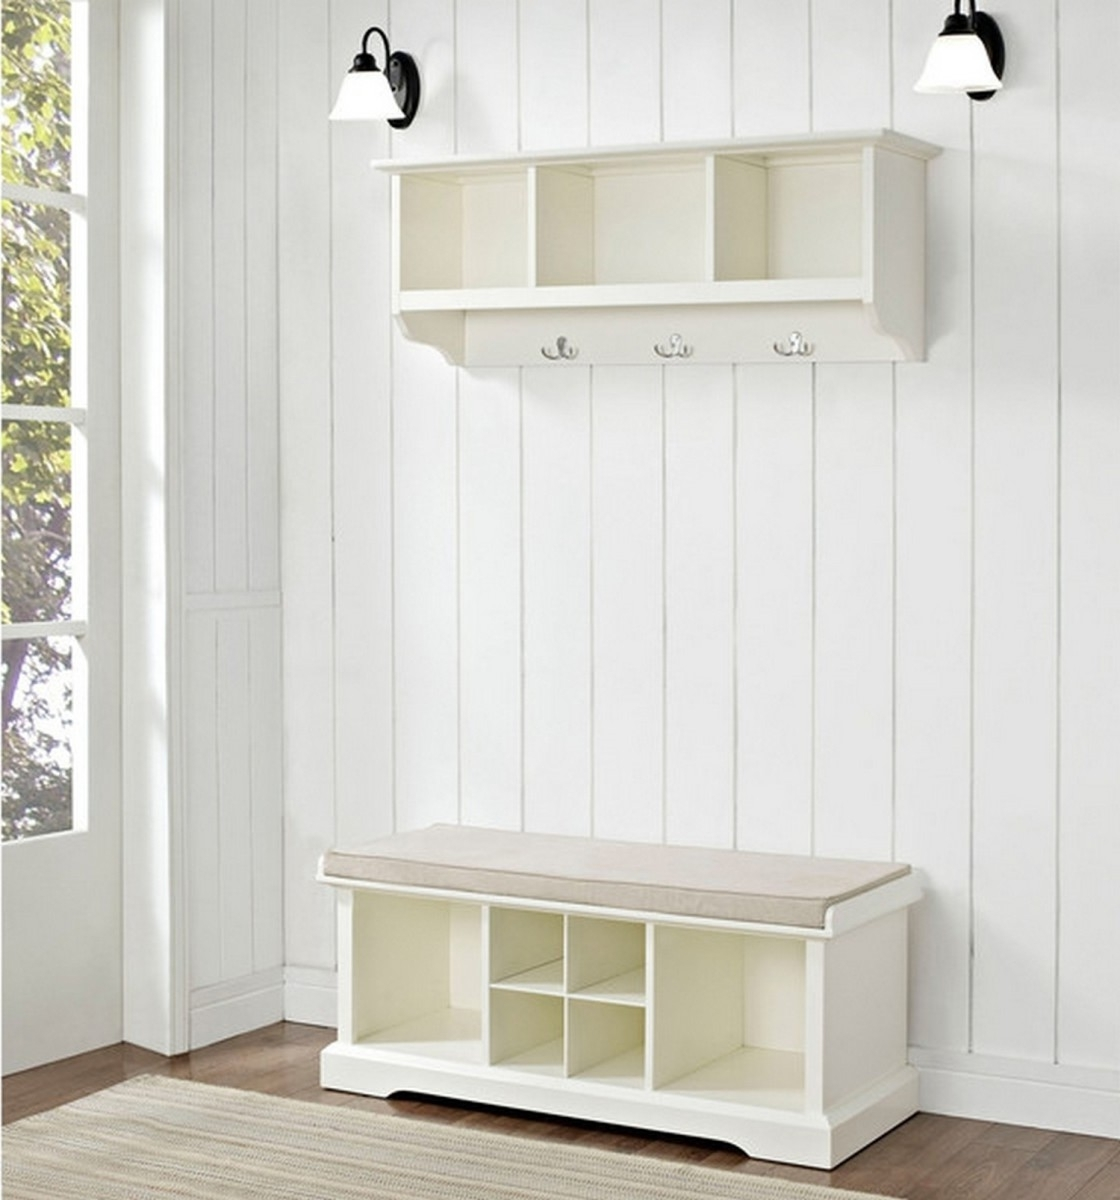 White Wicker Wardrobes Throughout Newest Image Result For Ikea Besta Wardrobe And Bench Combo Entryway (View 9 of 15)